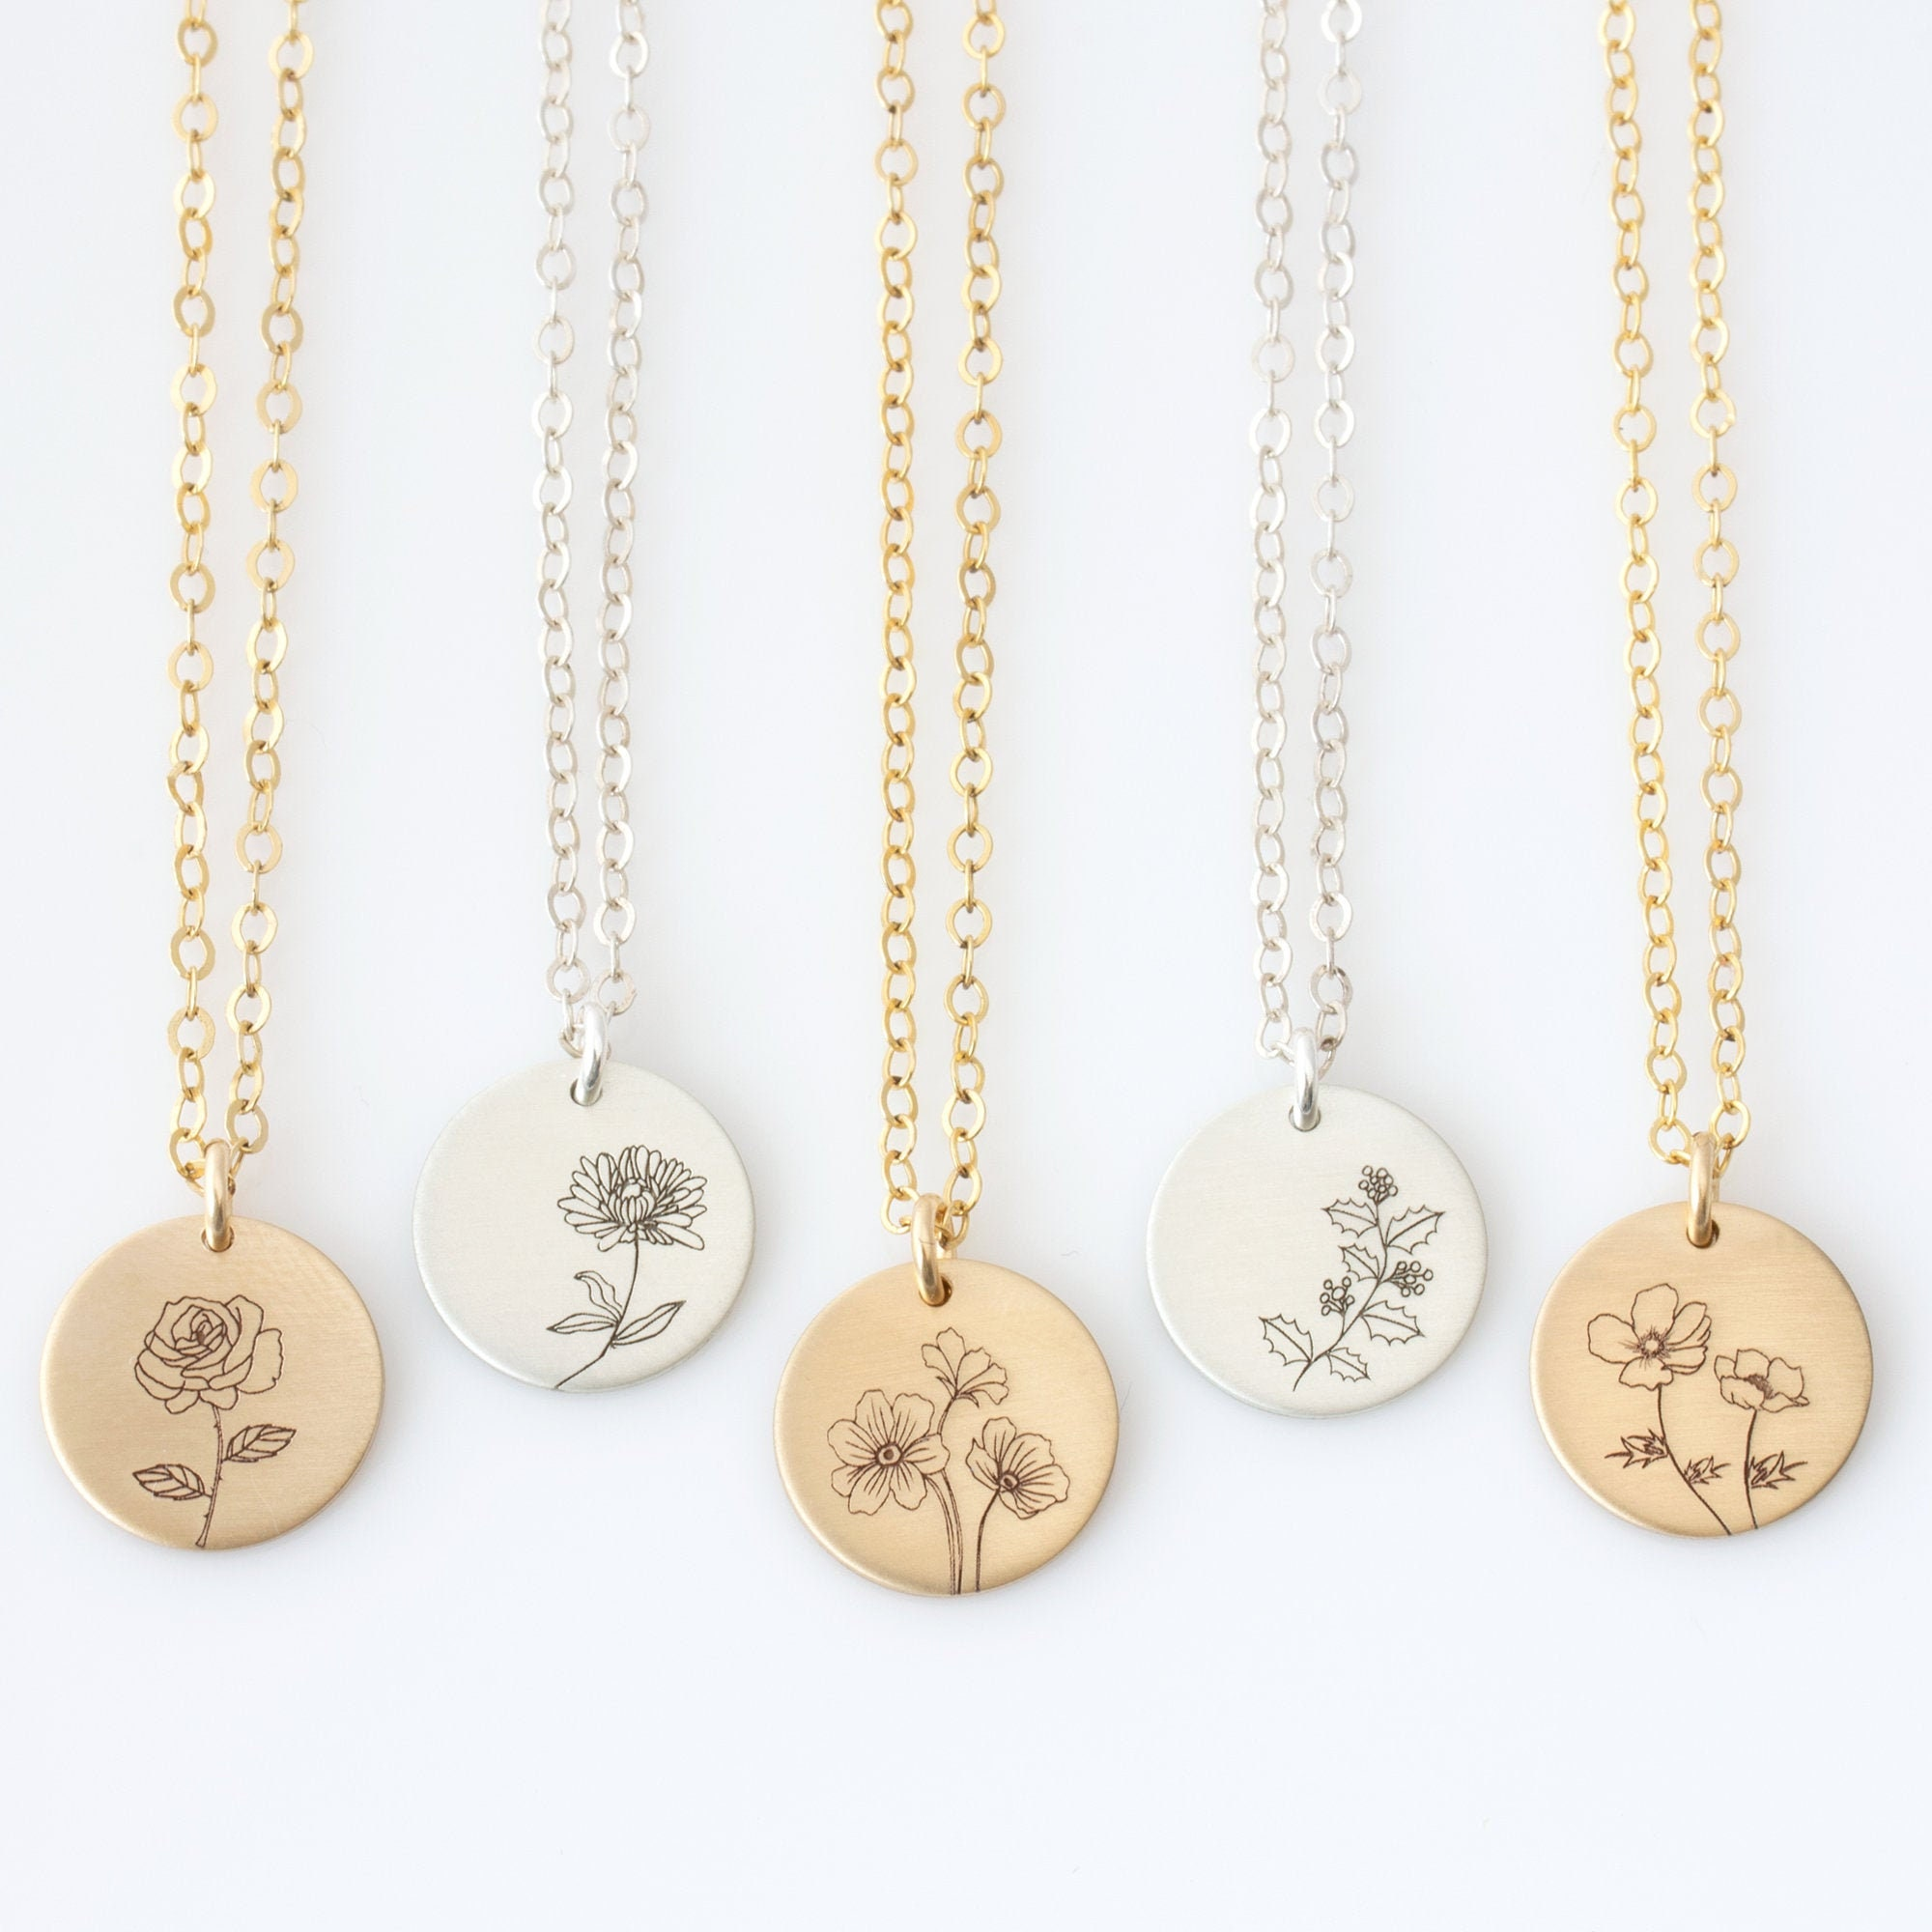 Birth Month Mom Necklace Rose April Birth flower Daisy Flower necklace Silver Mothers Gift Gold Personalized Birth Flower Necklace